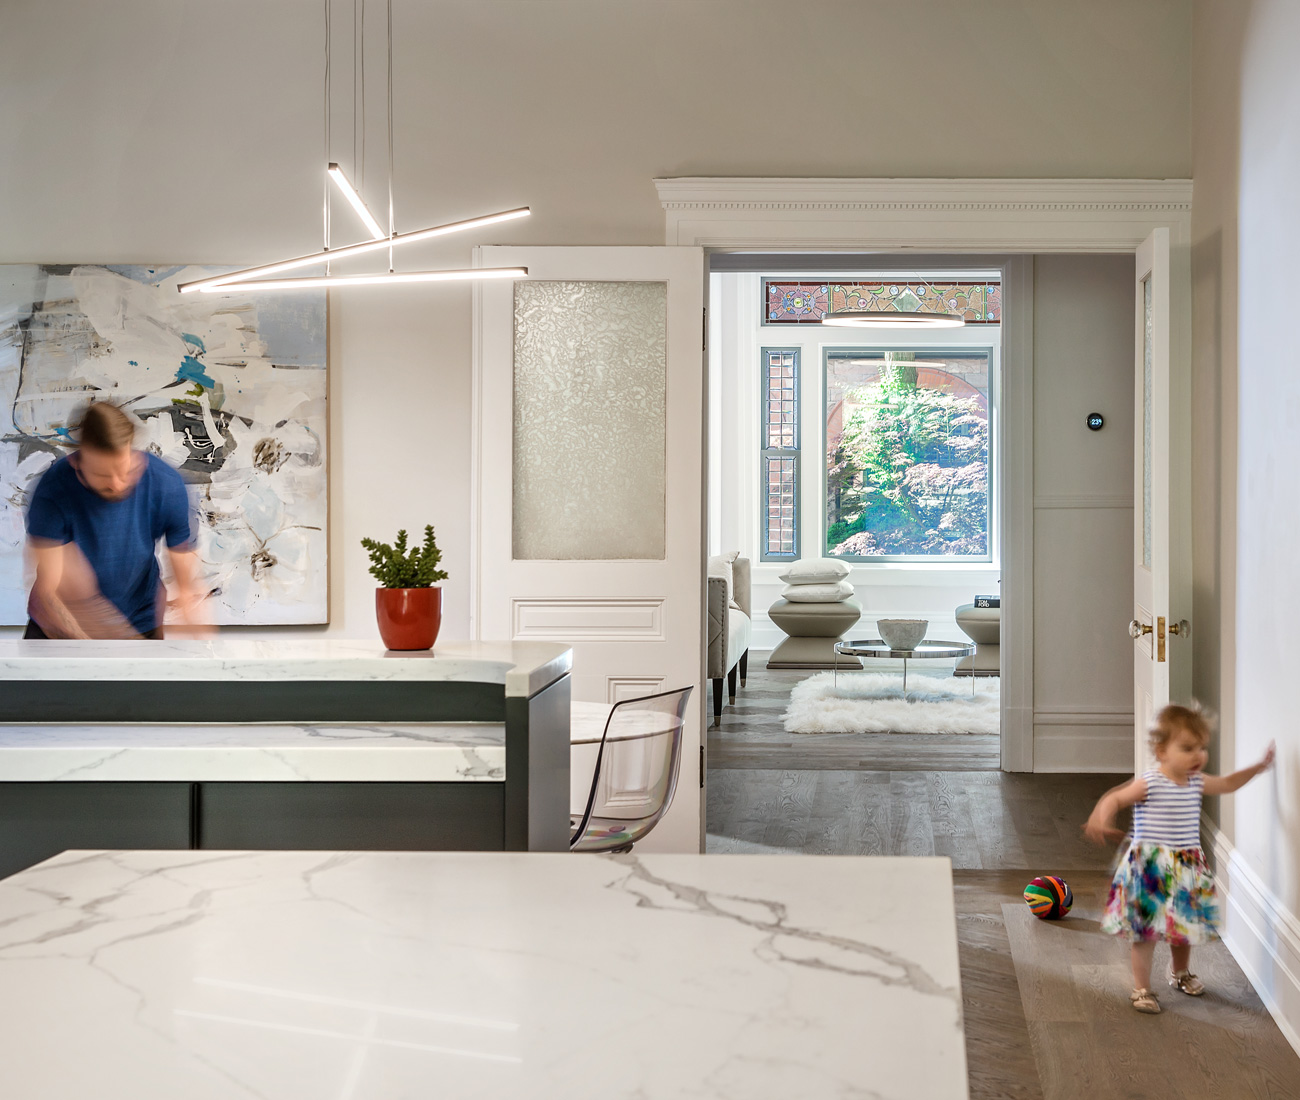 Book-matched quartzite on the island and backsplash lends the contemporary kitchen timeless appeal. Light from Sescolite; art by Rachel Ovadia.